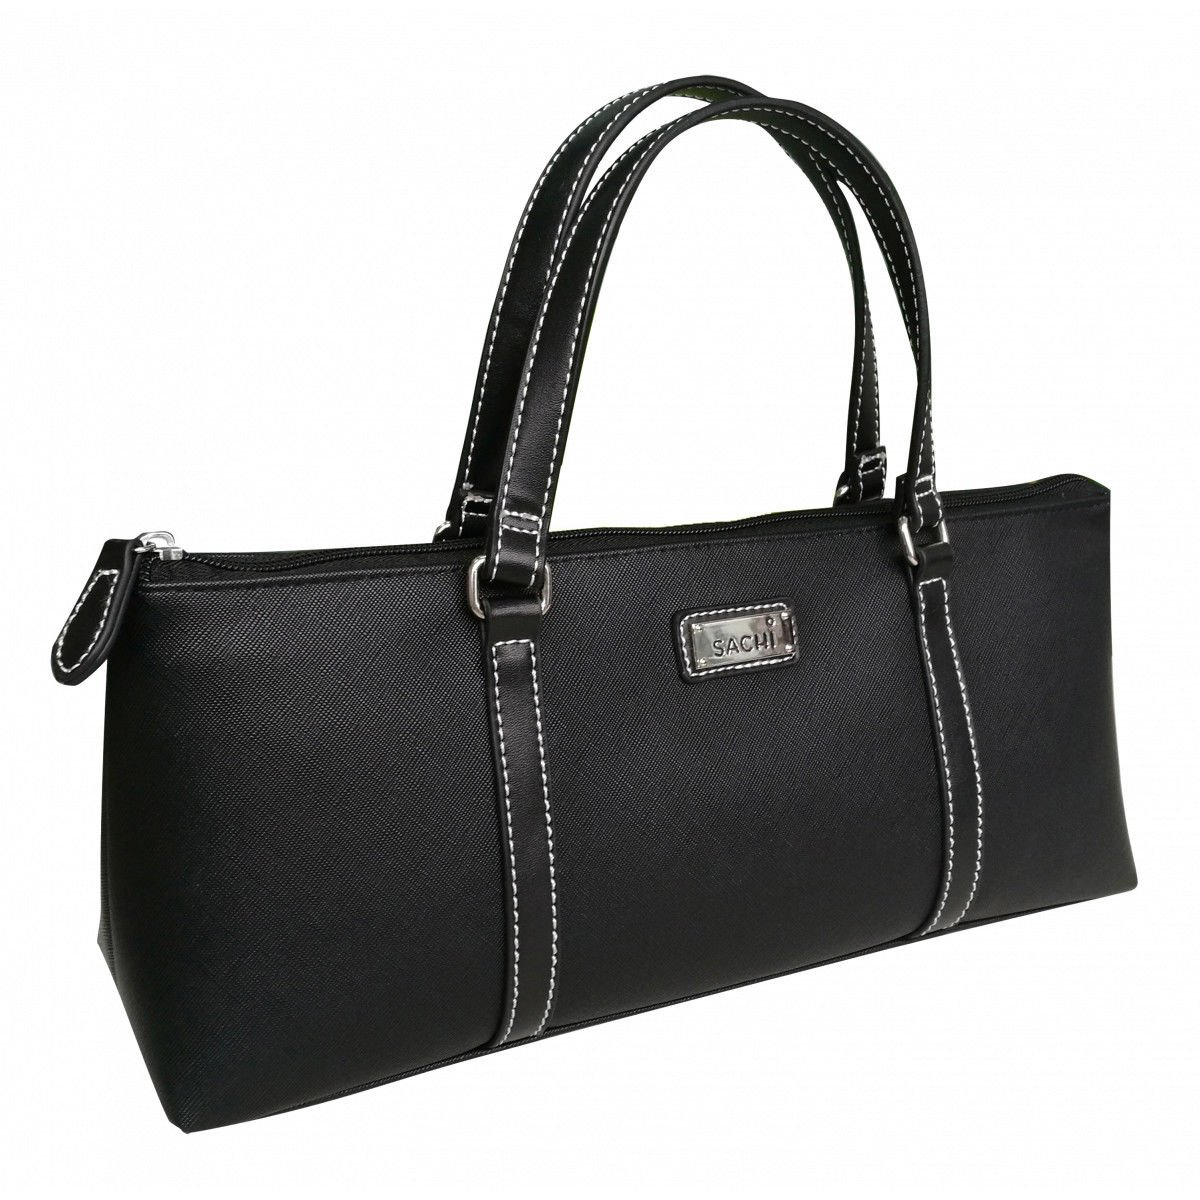 Sachi Insulated Wine Purse Cooler Tote Bag - Black by Sachi Insulated Wine Purse Cooler Tote Bag - Black (Image #1)